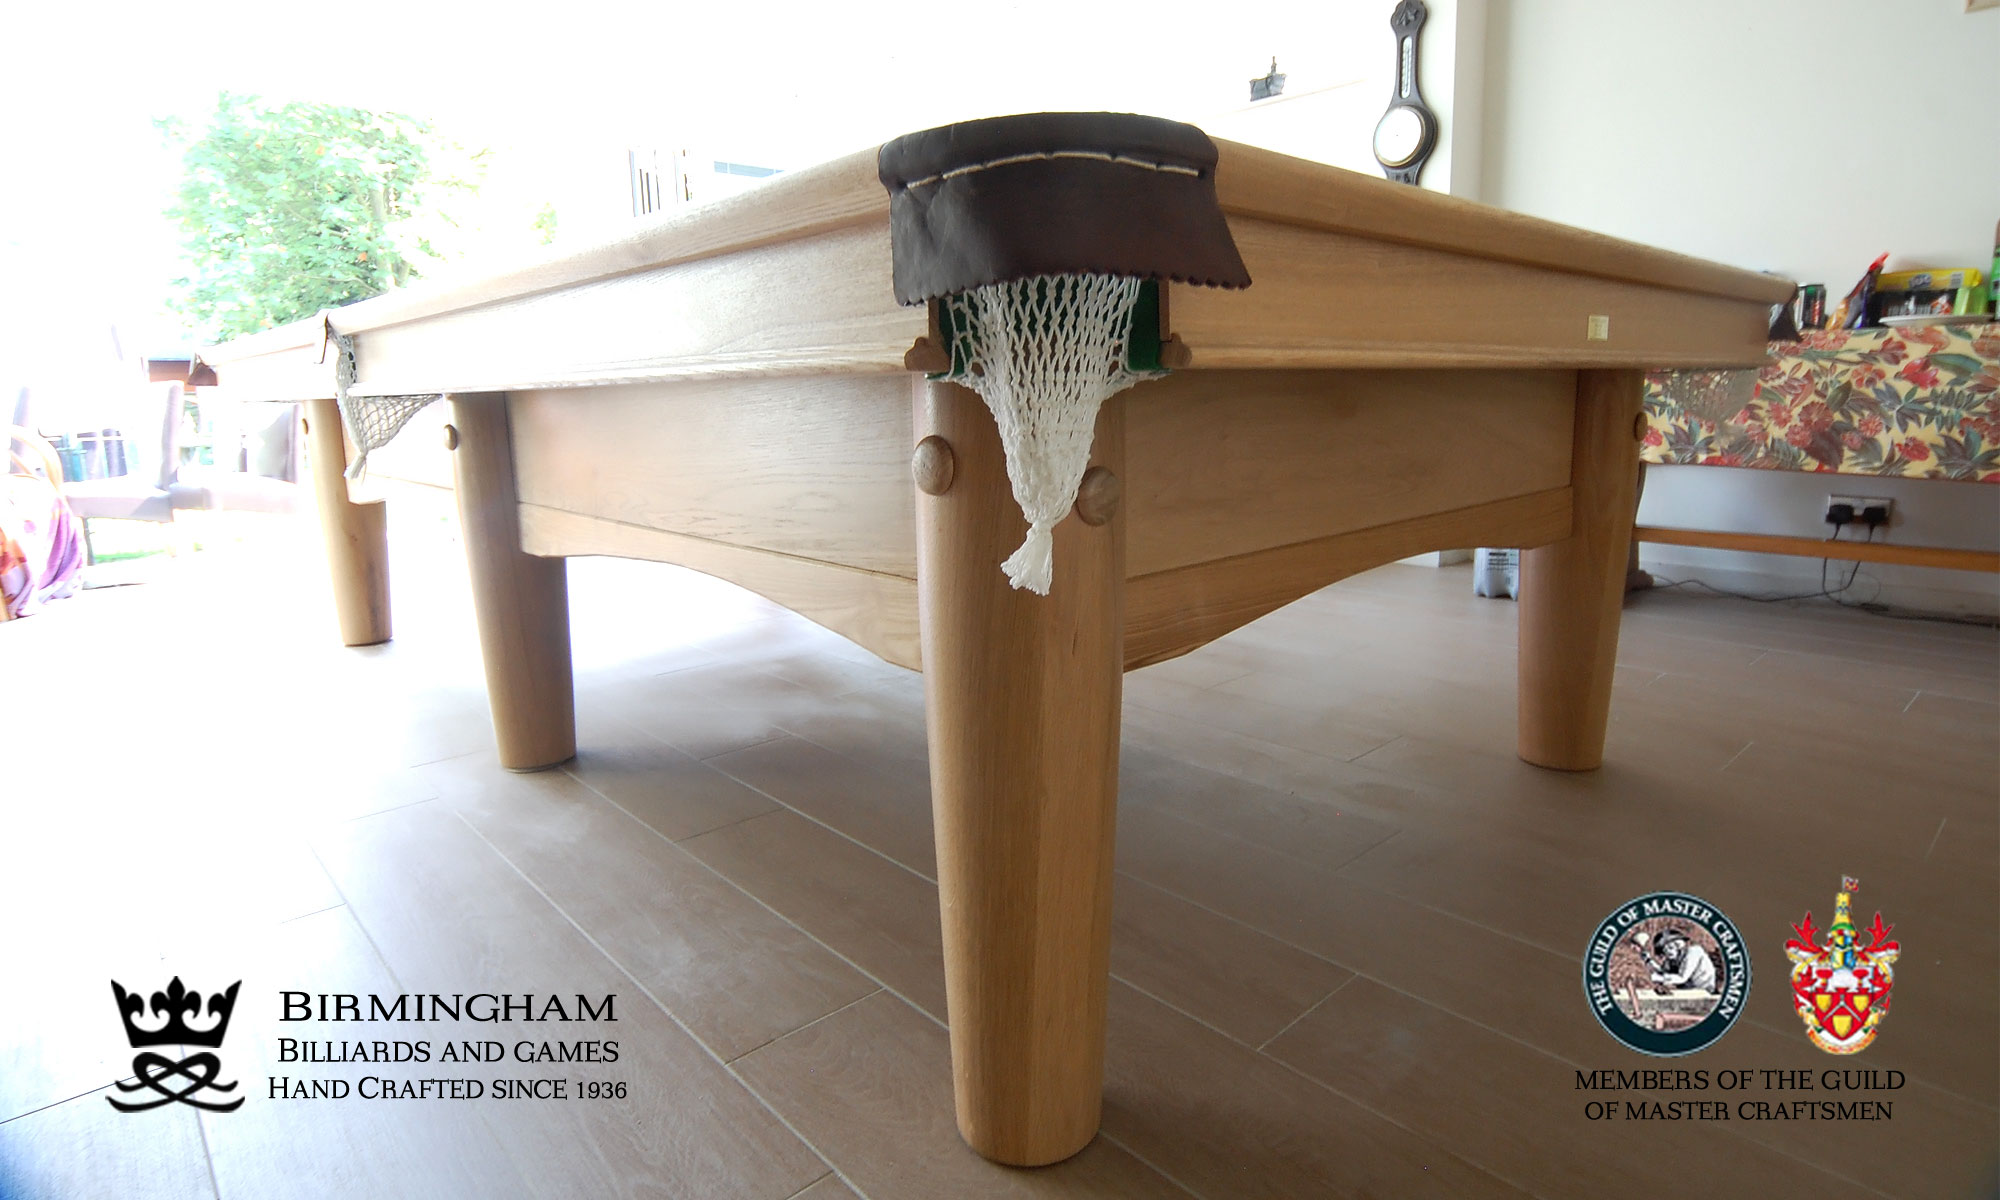 Hand made pool tables